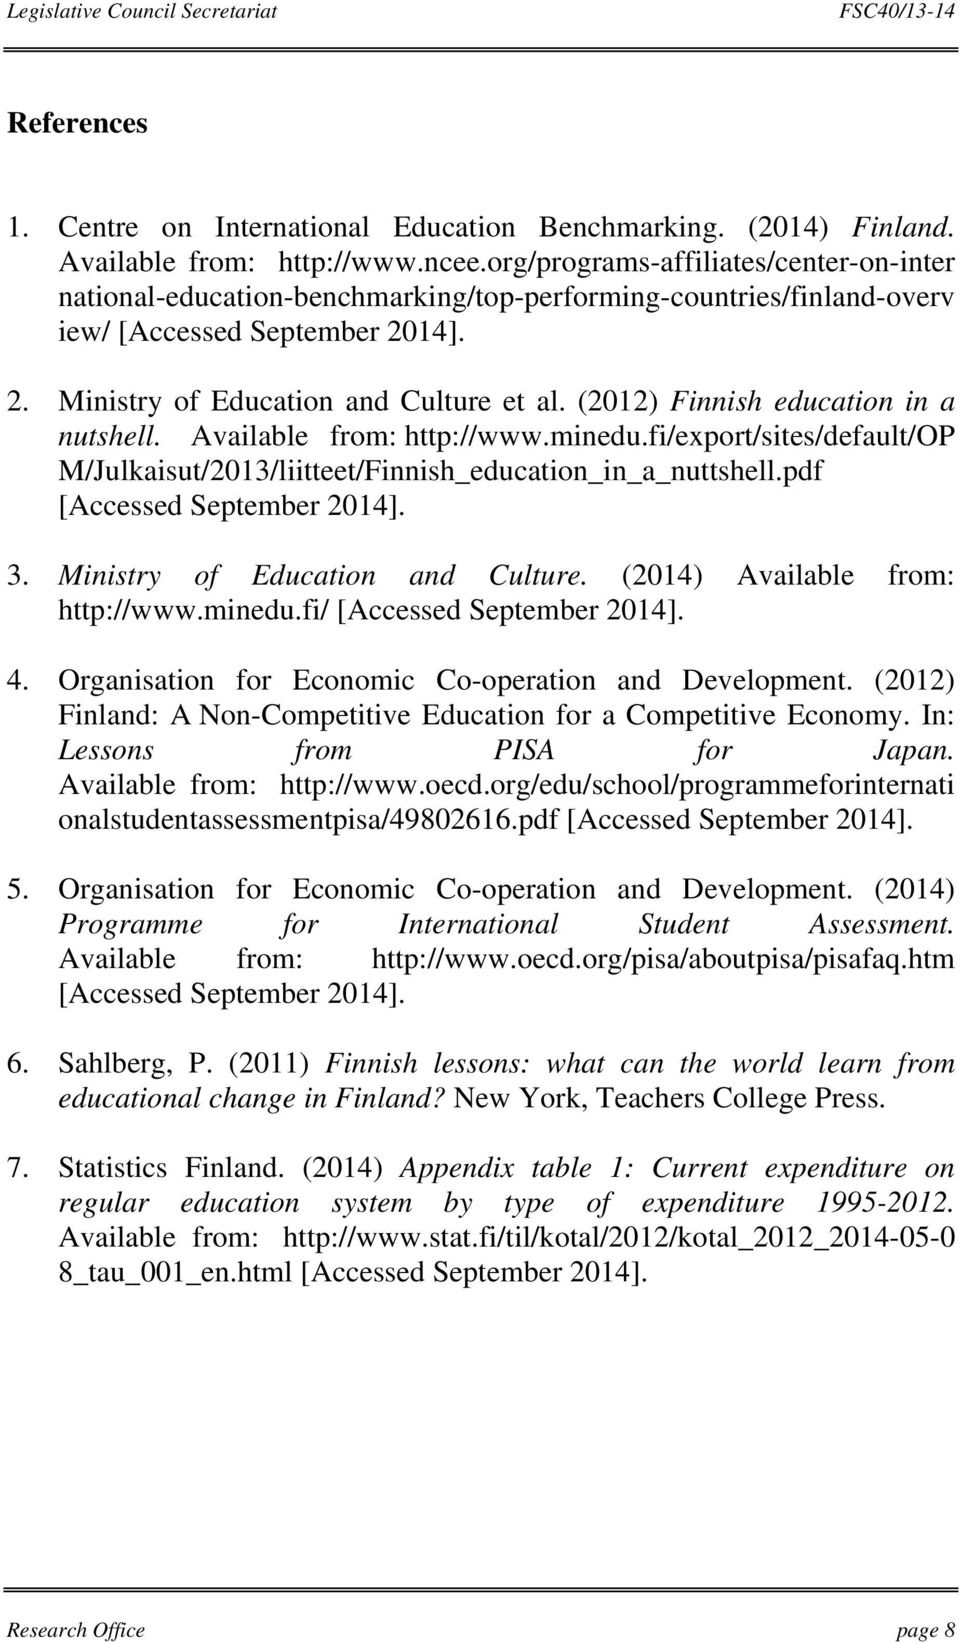 (2012) Finnish education in a nutshell. Available from: http://www.minedu.fi/export/sites/default/op M/Julkaisut/2013/liitteet/Finnish_education_in_a_nuttshell.pdf [Accessed September 2014]. 3.